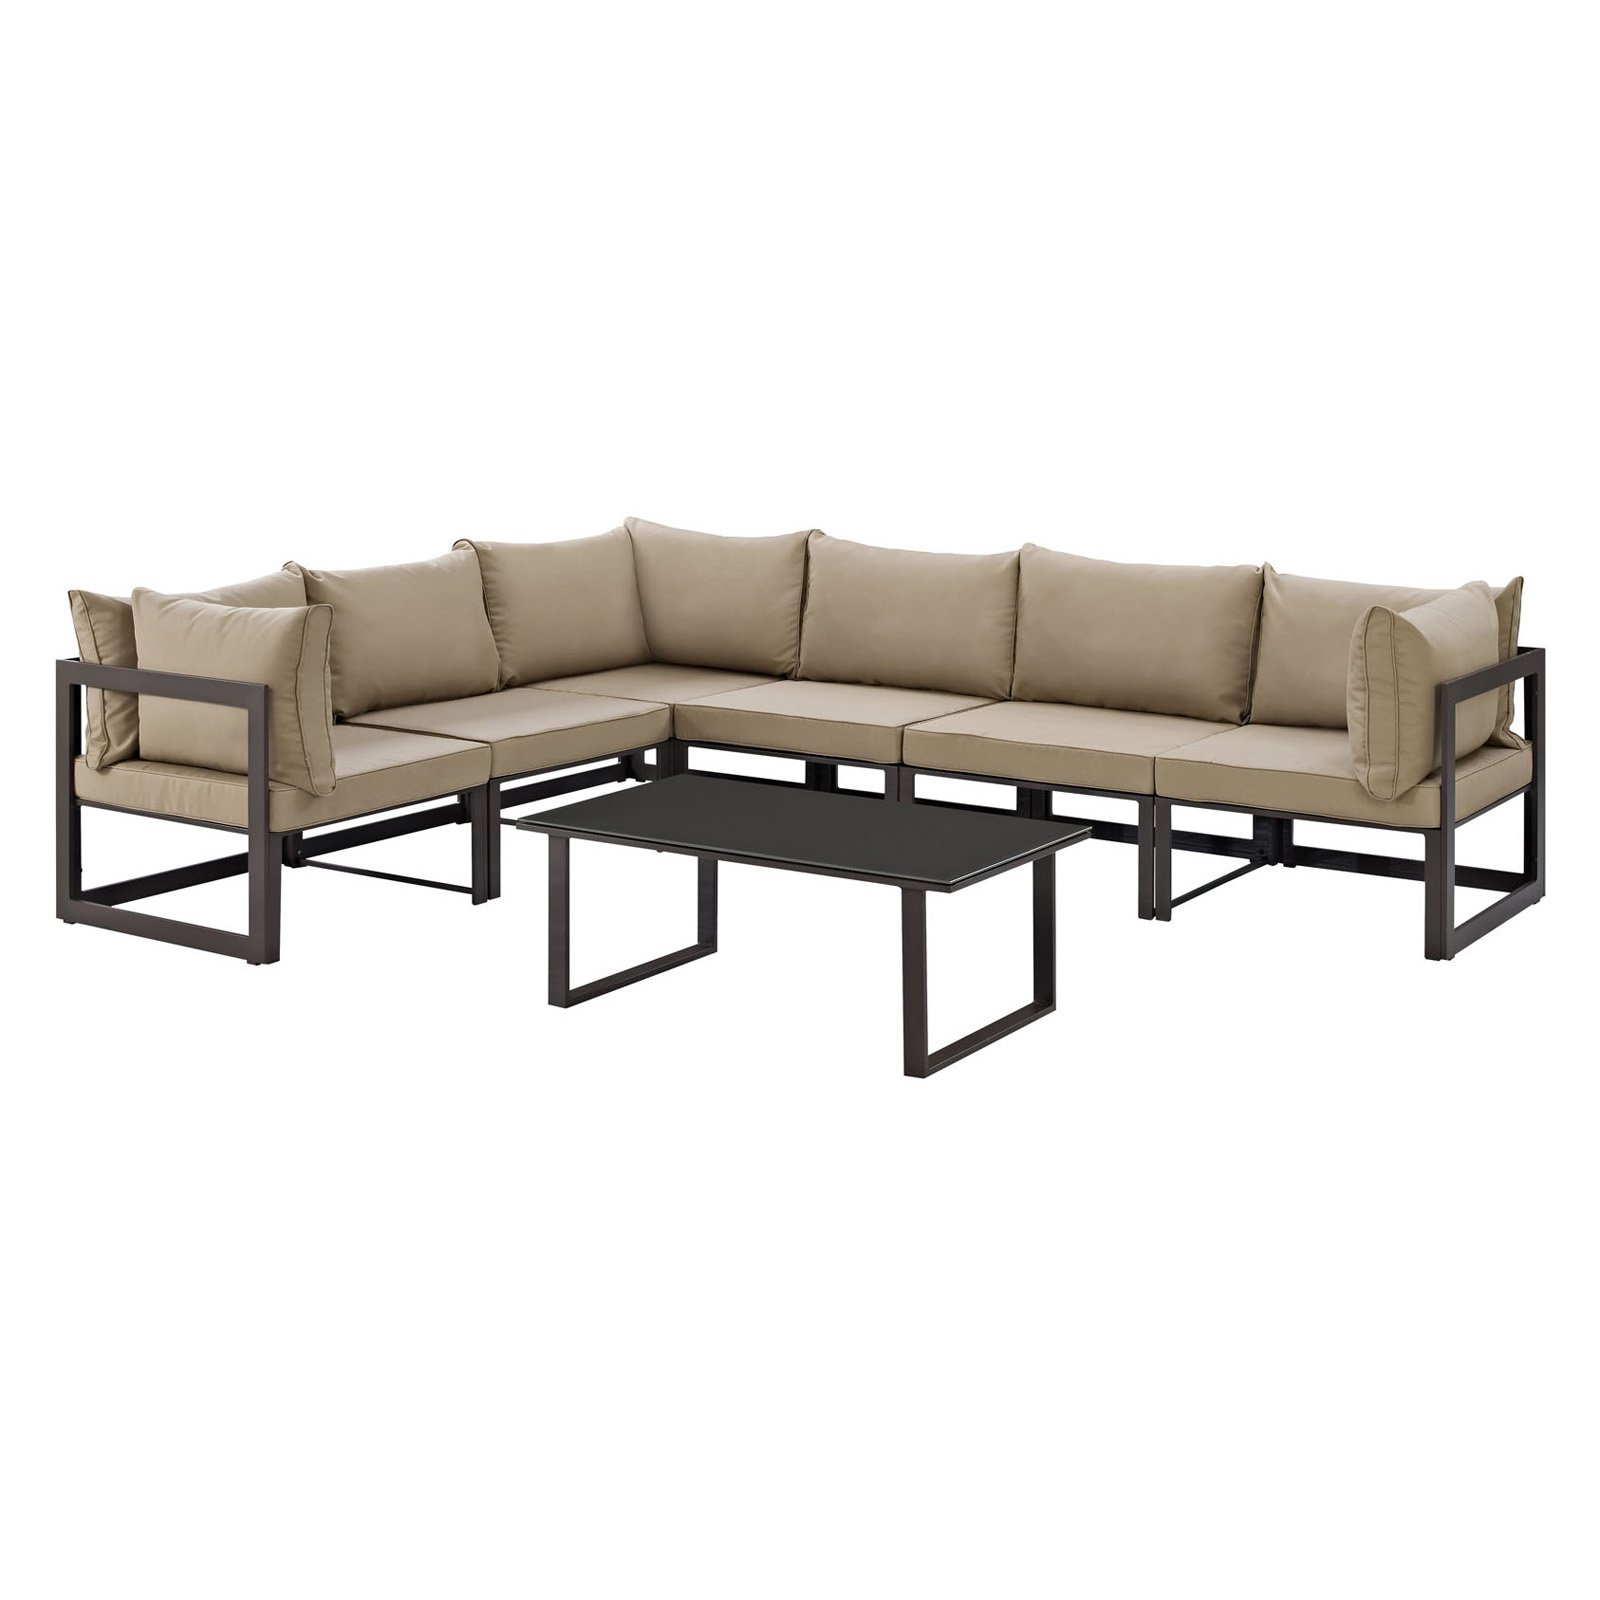 Modway Fortuna 7 Piece Outdoor Patio Sectional Sofa Set, Multiple Colors